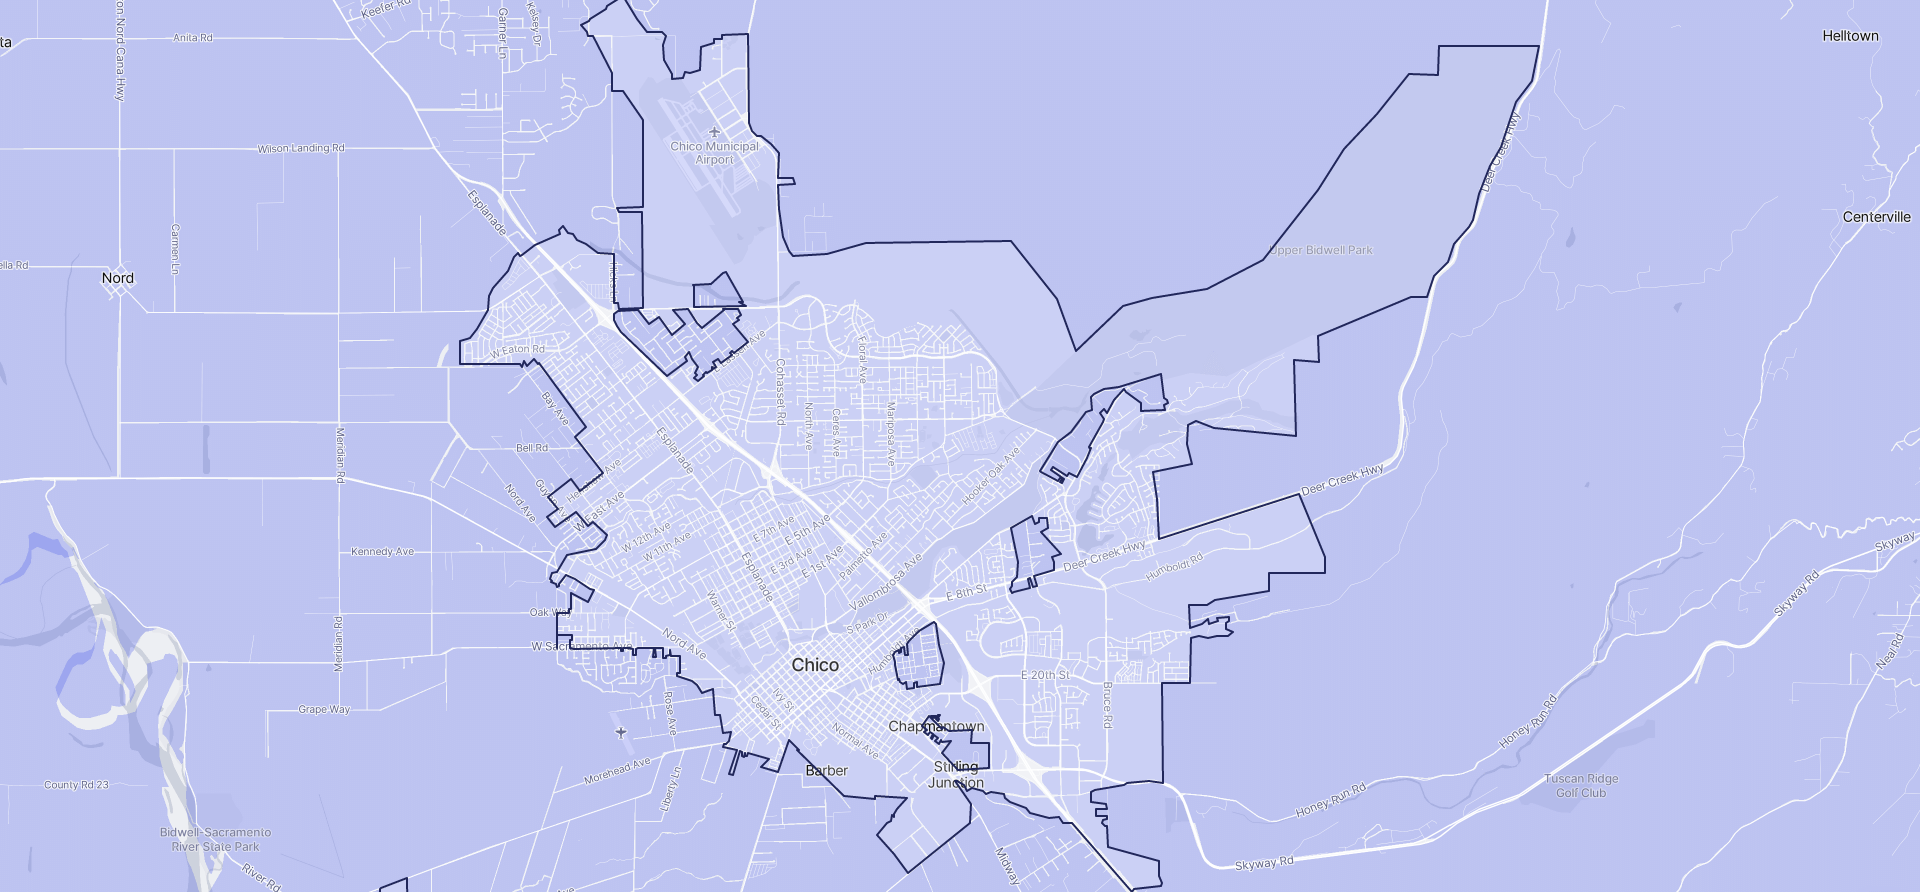 Image of Chico boundaries on a map.